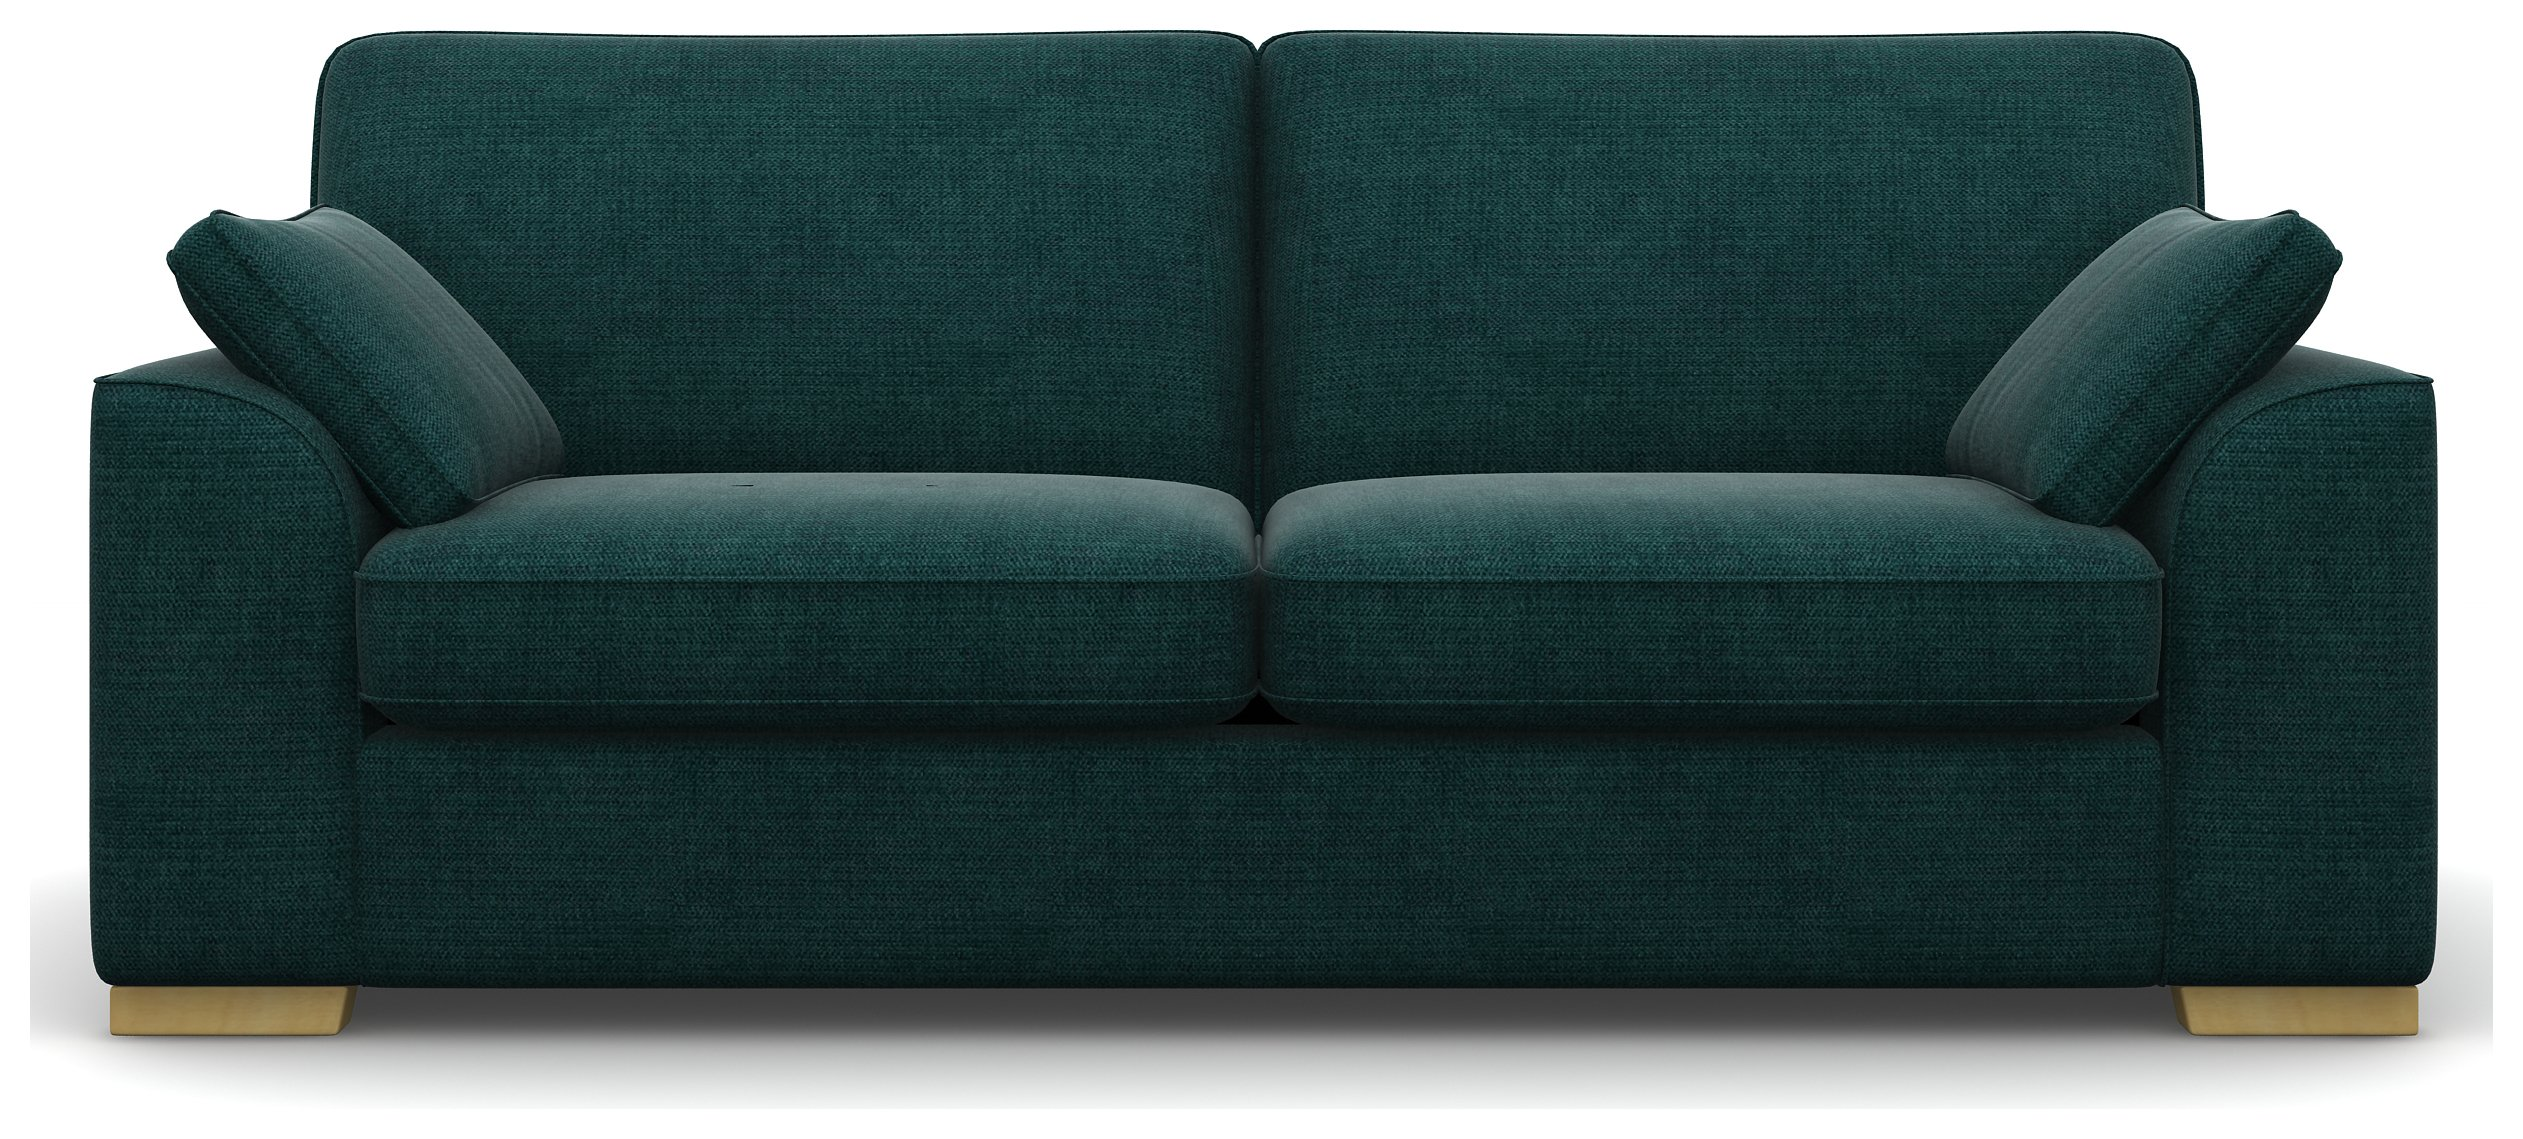 Heart of House Lincoln 3 Seater Fabric Sofa - Ocean Blue